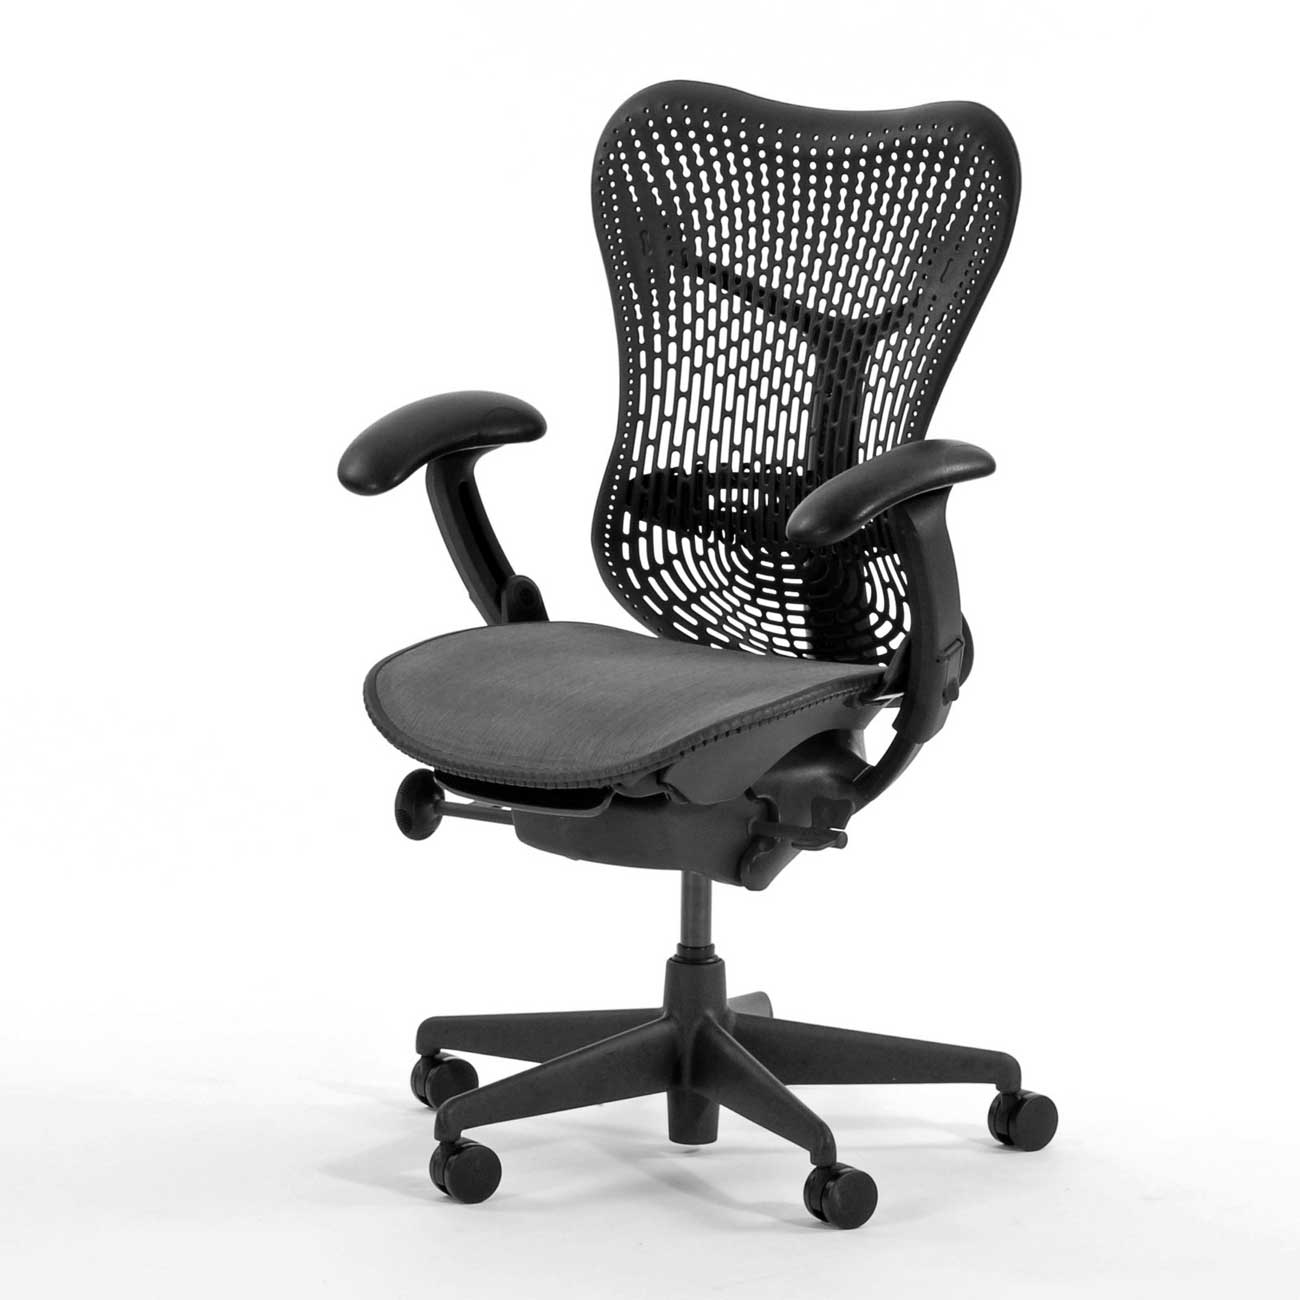 Aeron Chair Alternative Hermann Miller Aeron Chair From The With Hermann Miller